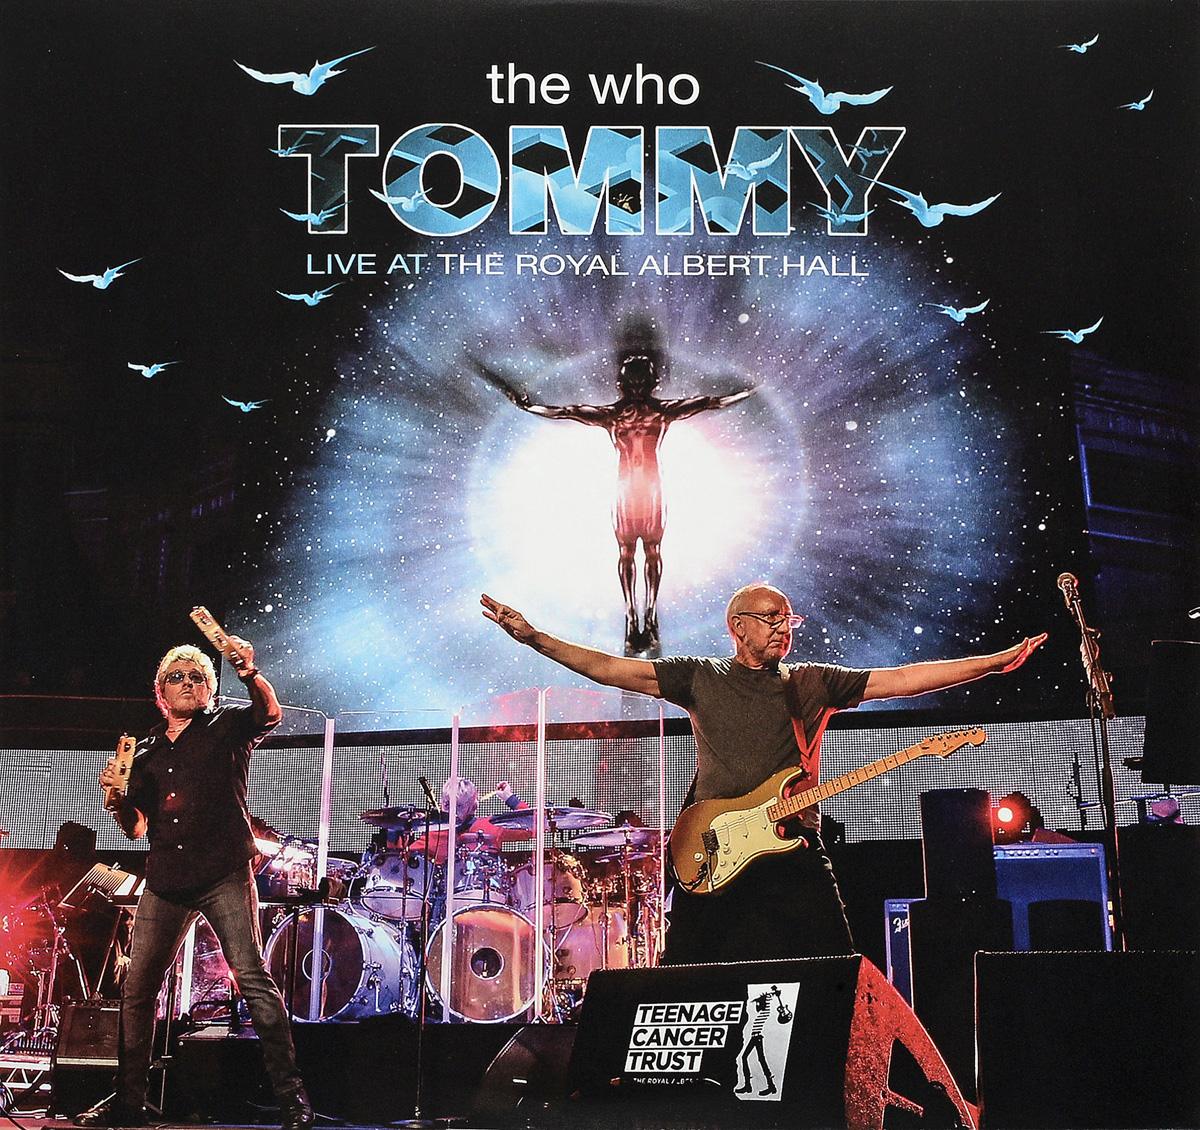 The Who The Who. Tommy - Live At The Royal Albert Hall (3 LP) the who the who tommy live at the royal albert hall 3 lp